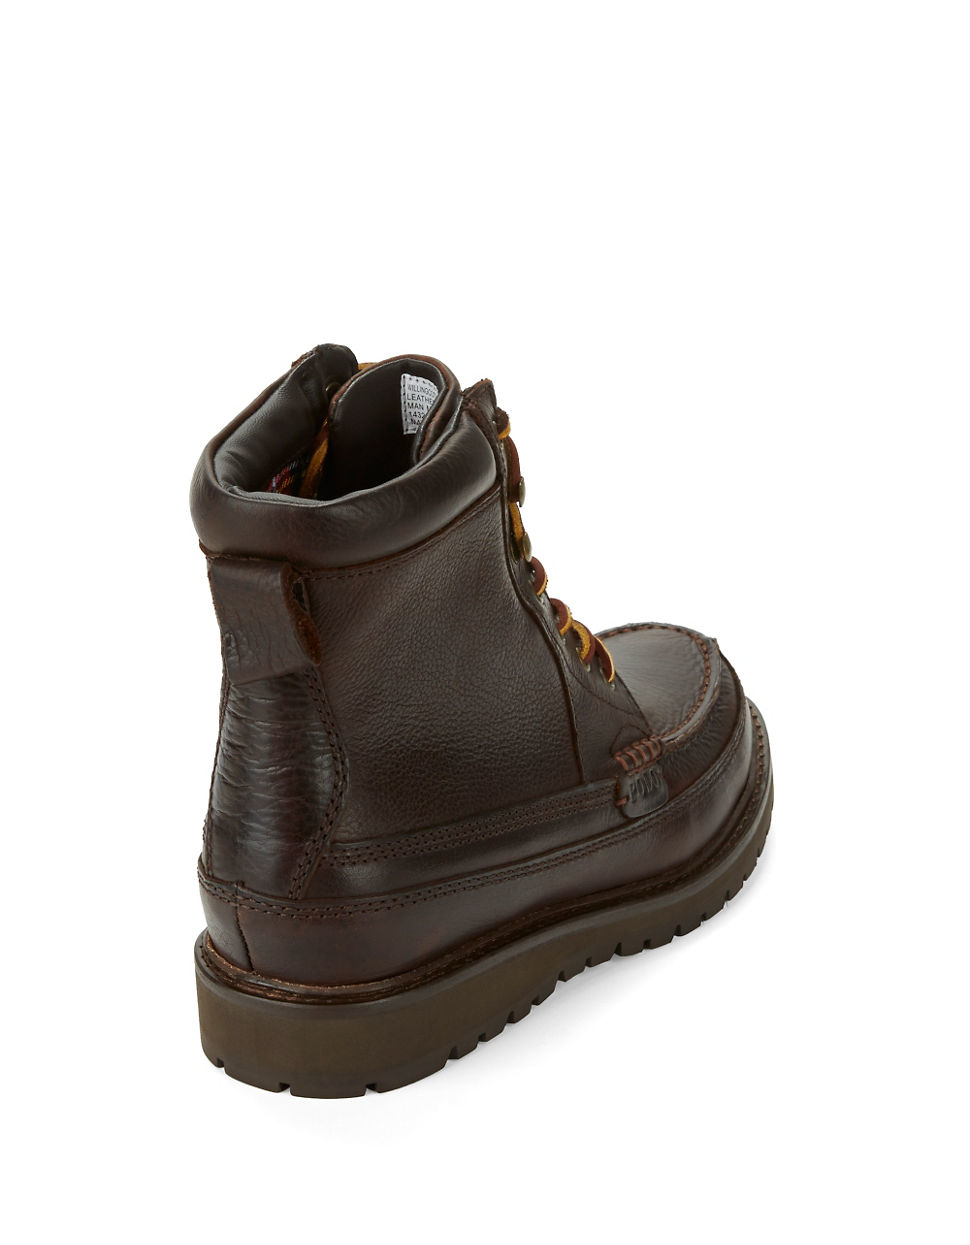 Polo ralph lauren Willingcott Leather Boots in Black for ...